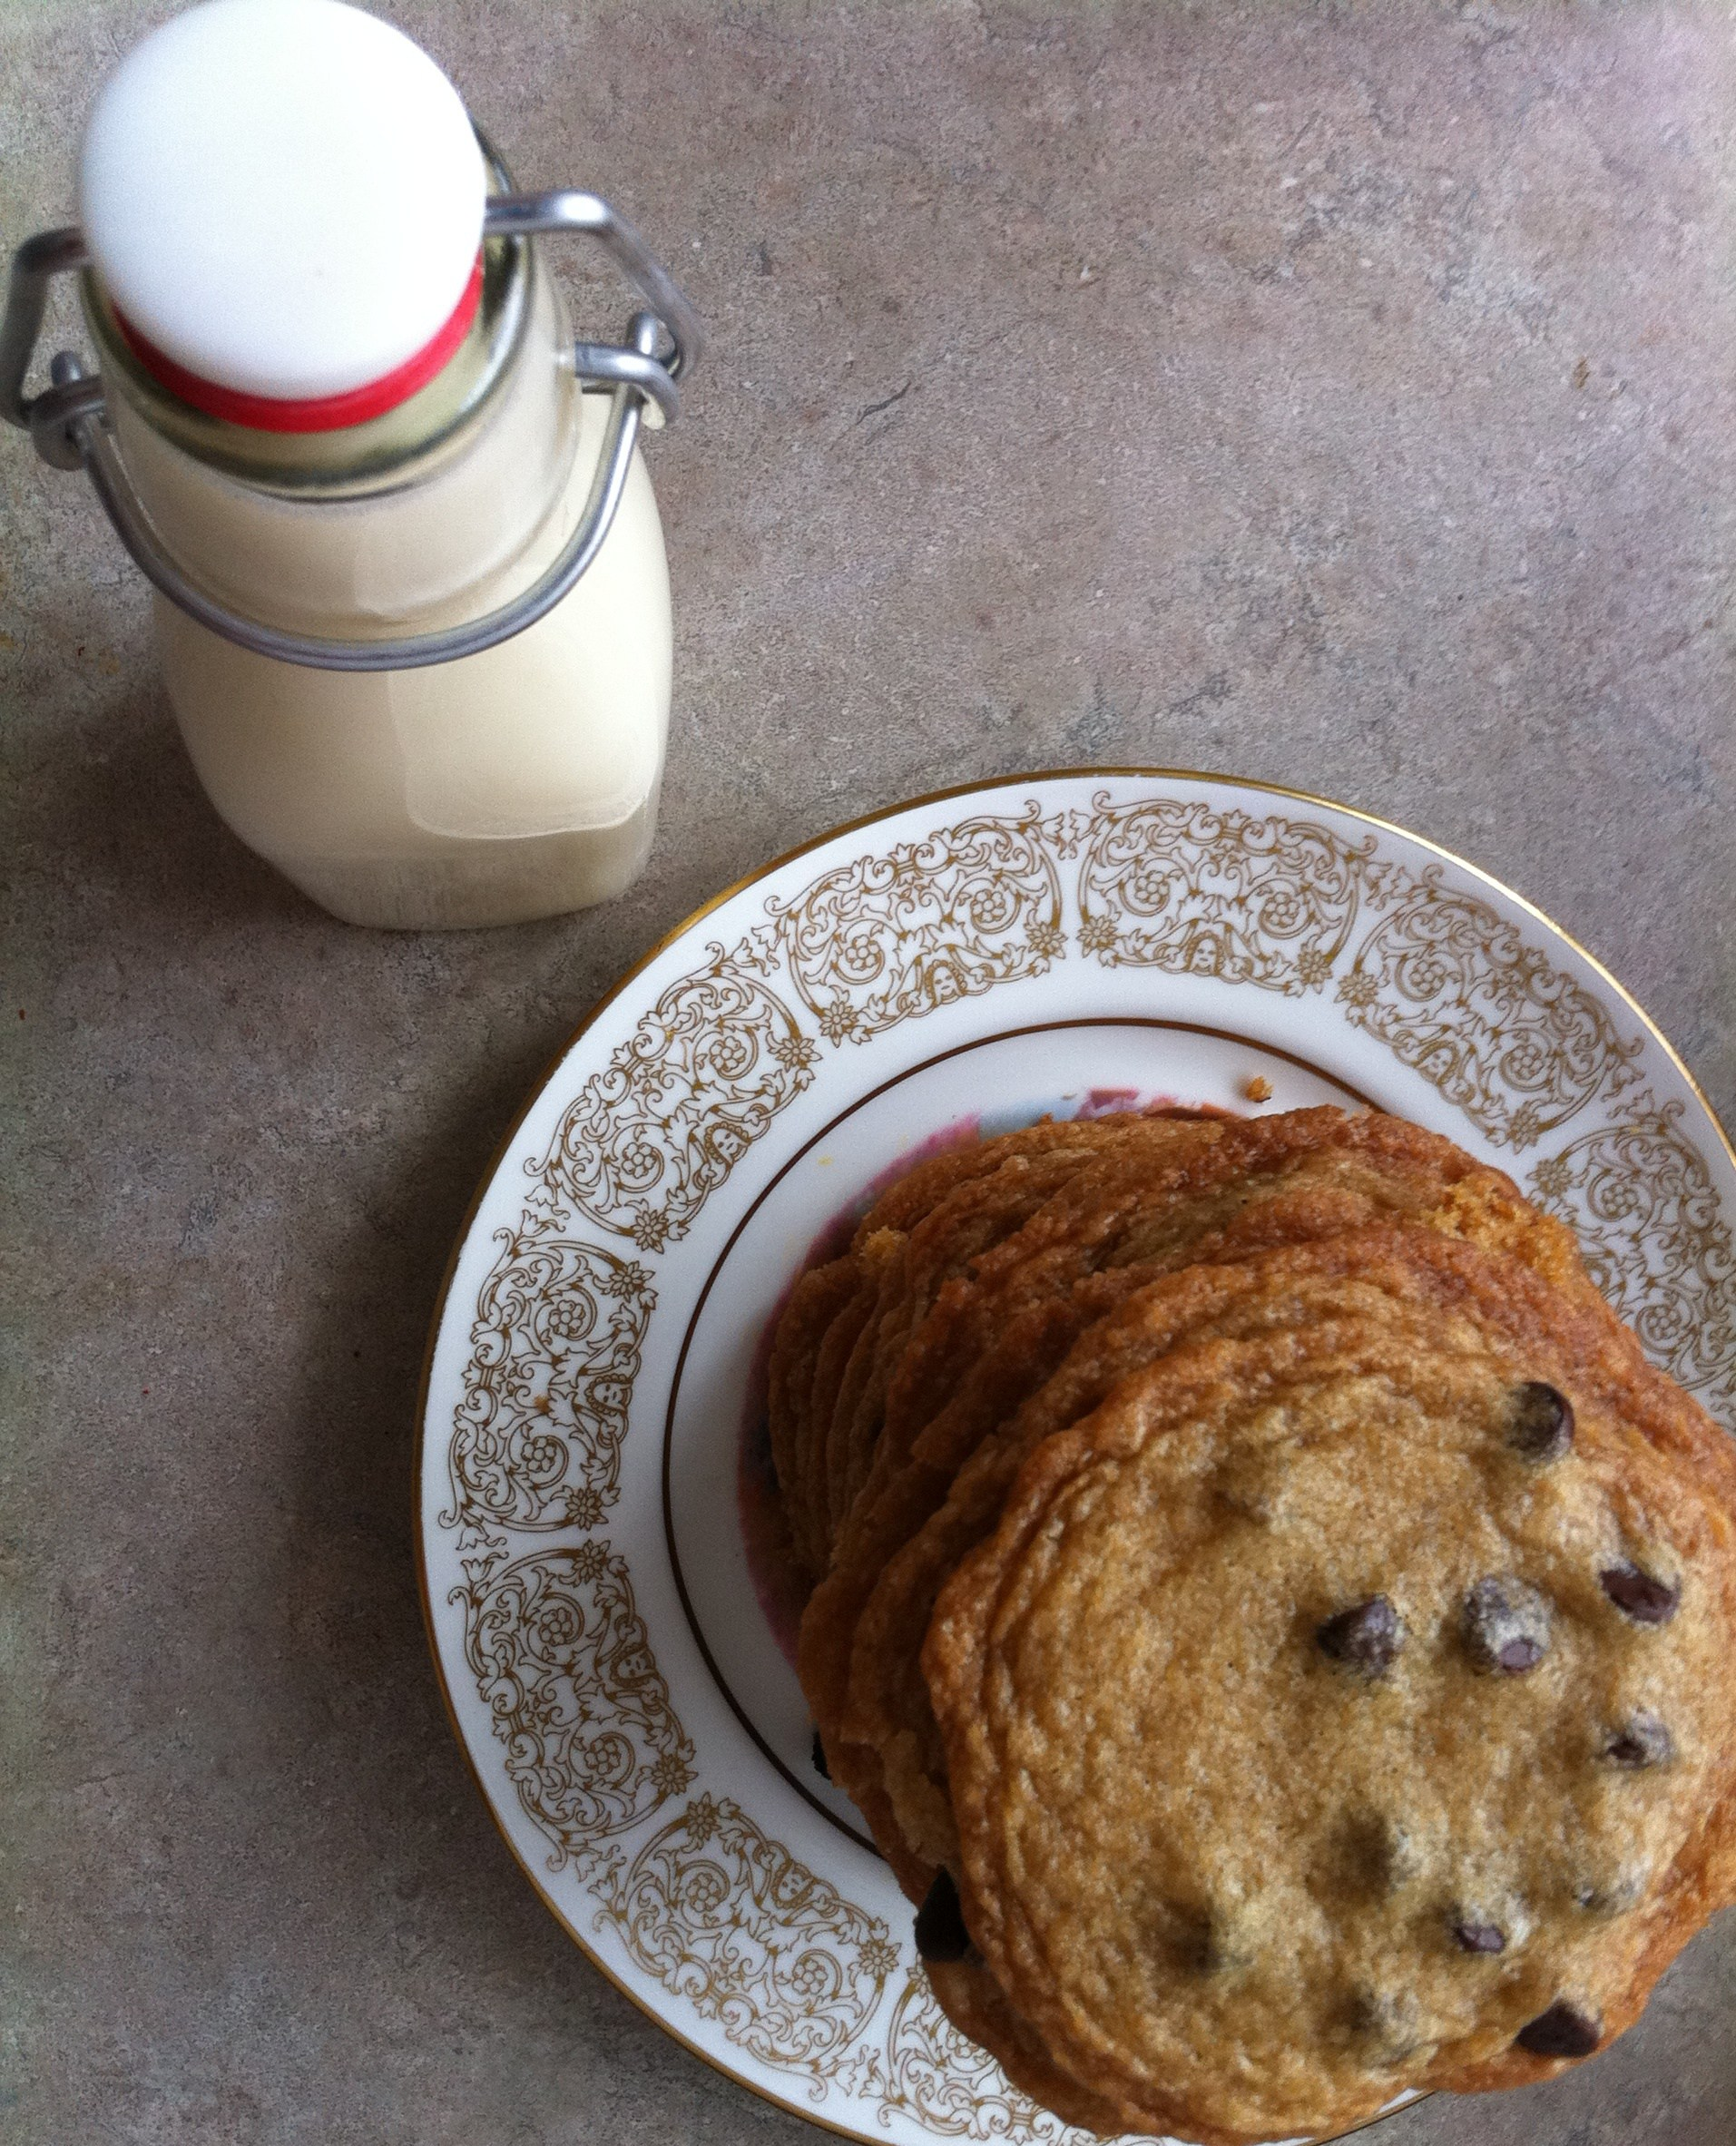 DIY Soy Milk with Vegan Chocolate Chip Cookies